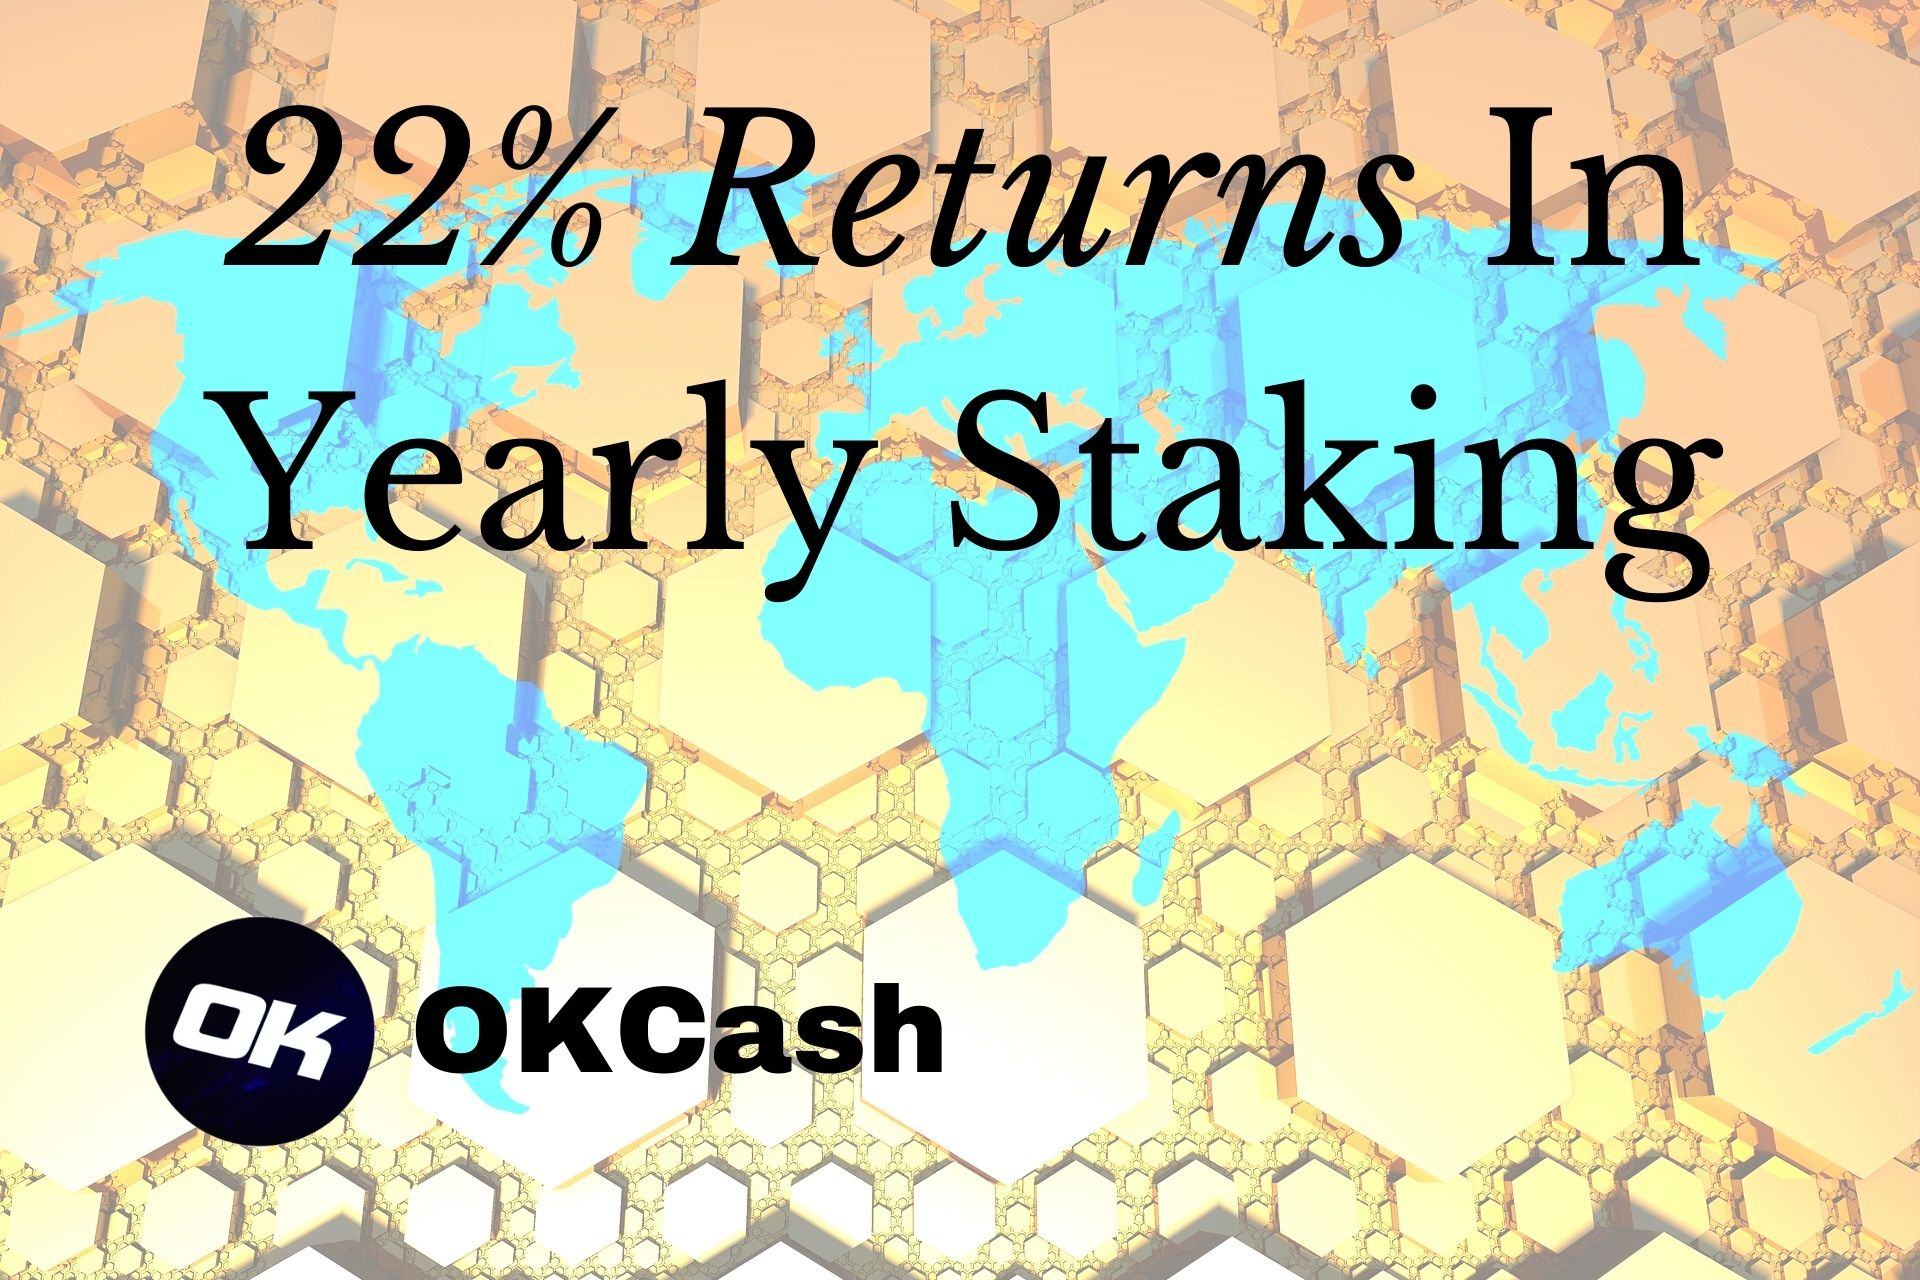 Proof-of-Stake Bitcoin OKCash Announces 22% Returns In Yearly Staking Rewards, Network Growth Accelerates